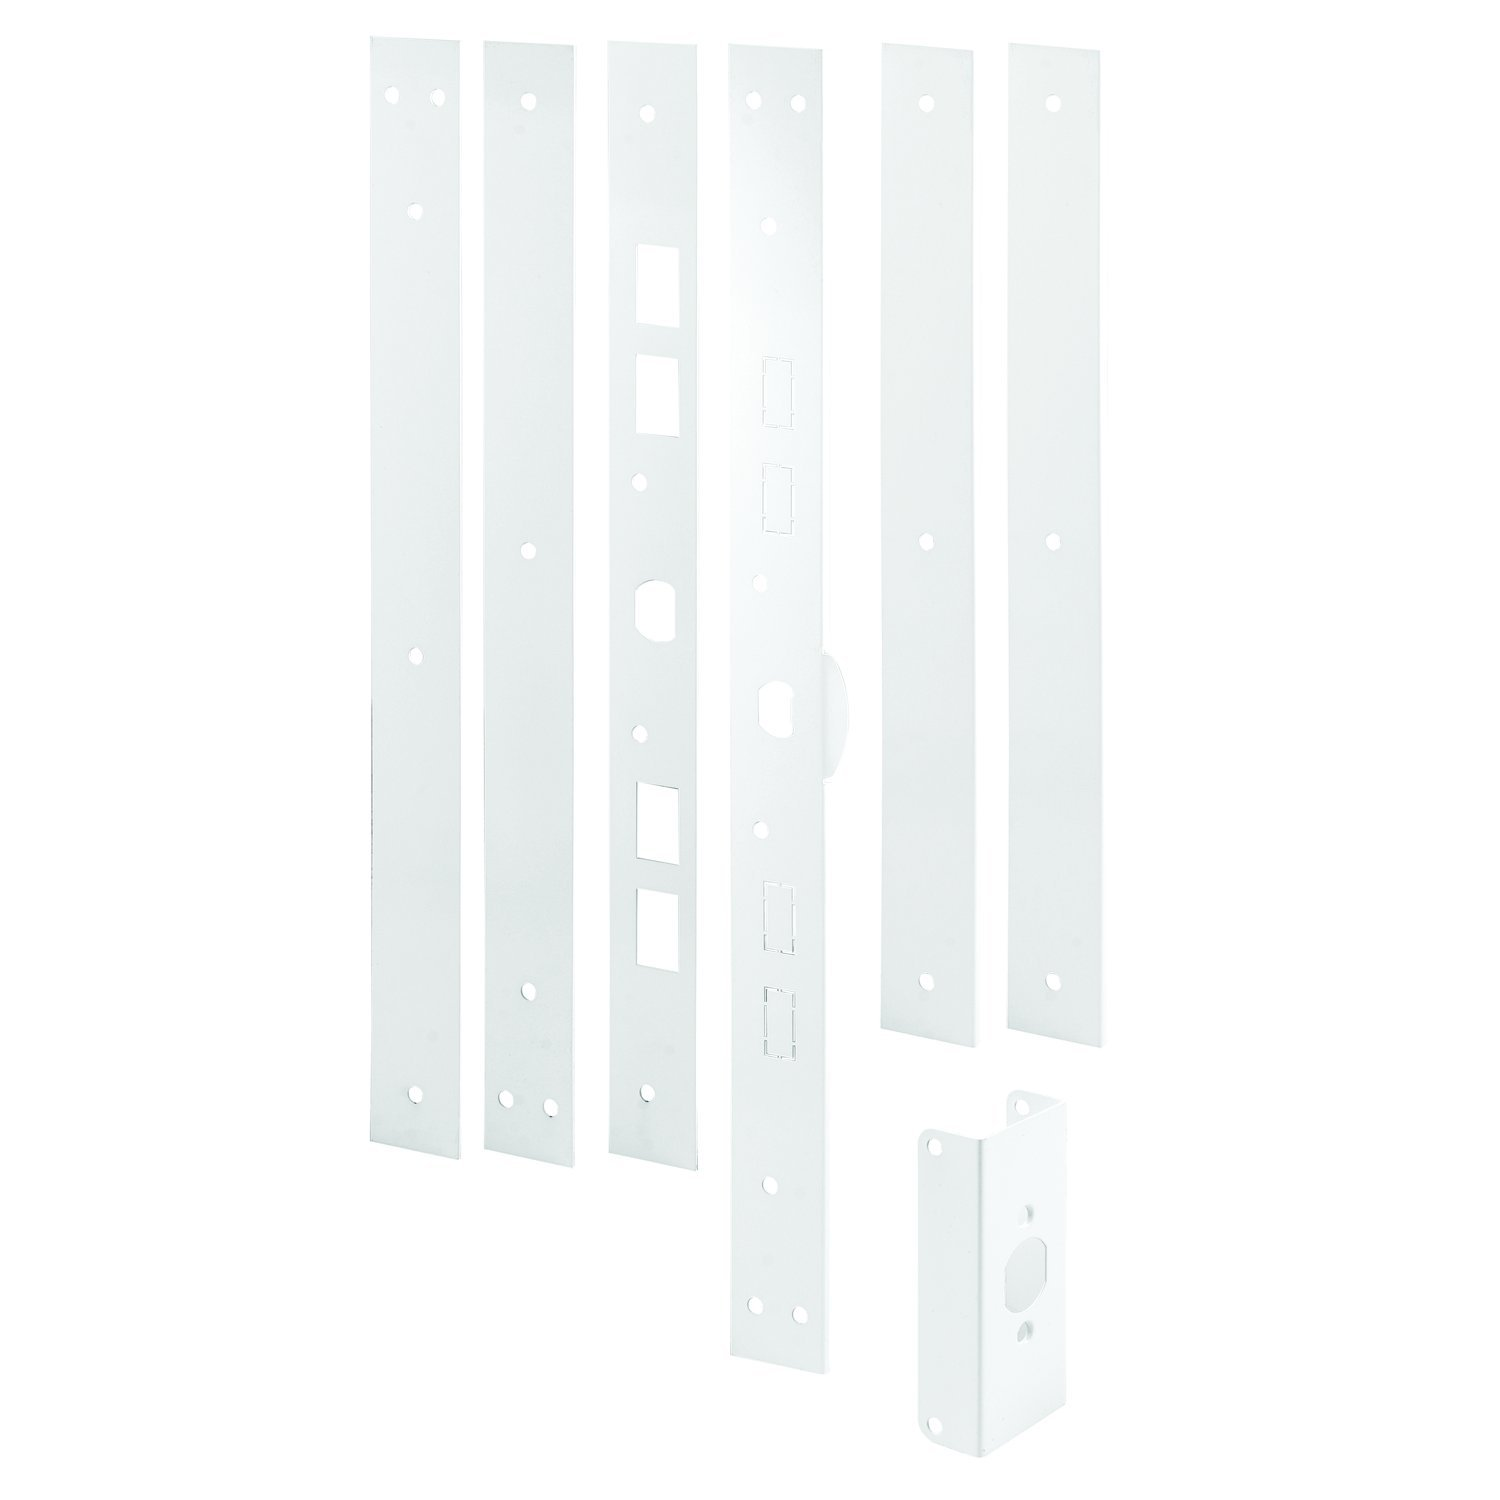 "Prime-Line U 11026 Jamb Repair and Reinforcement Kit, 59-1/2"" – Reinforce and Repair Door Jamb - Add Extra Security to Your Home to Help Prevent Forced Entry – Steel, Paintable White Finish"